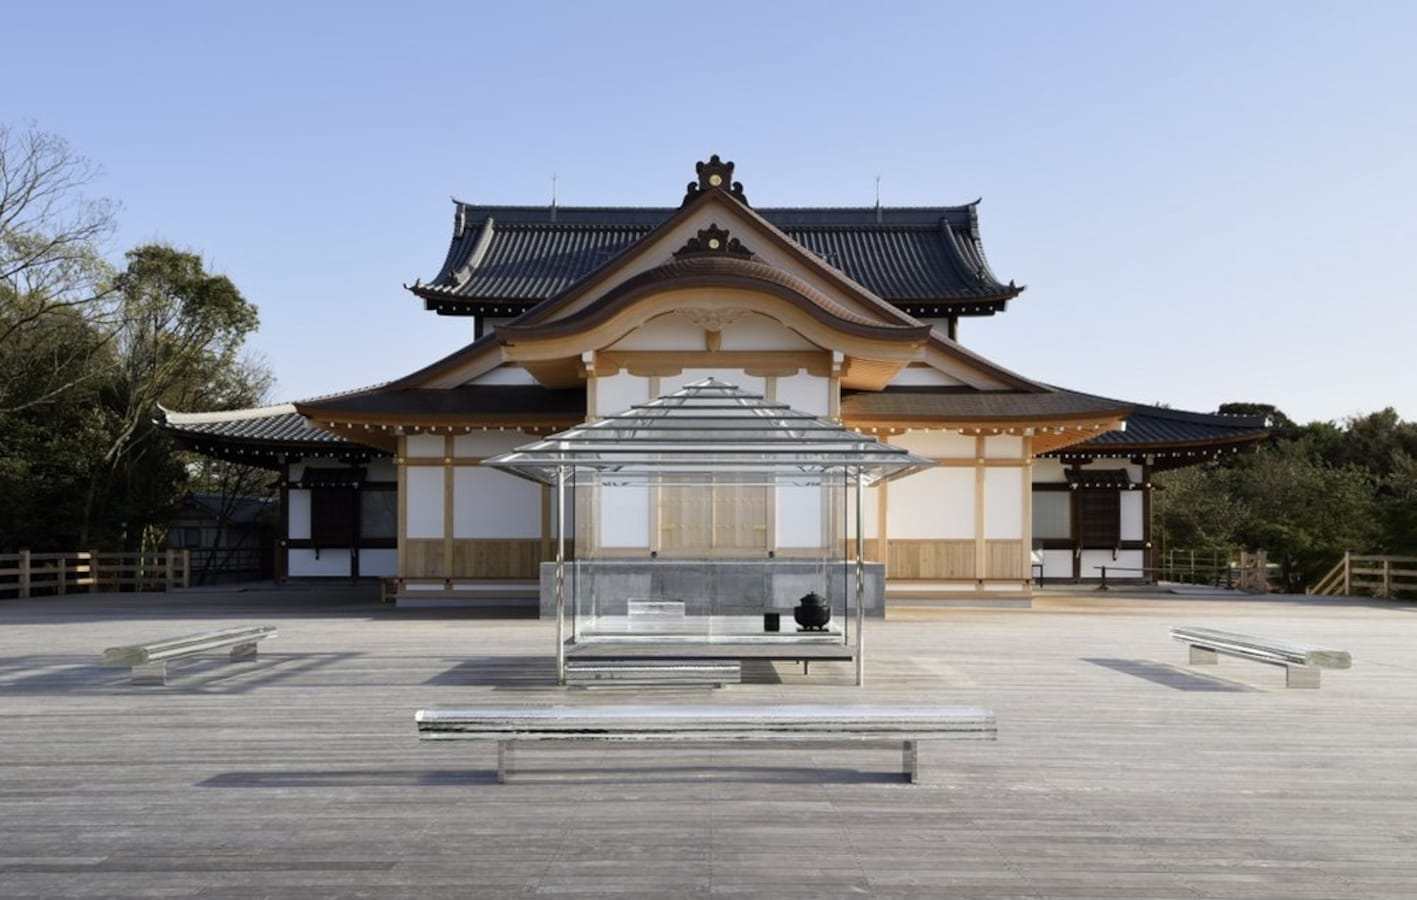 5 Temples Shrines For Design Lovers All About Japan